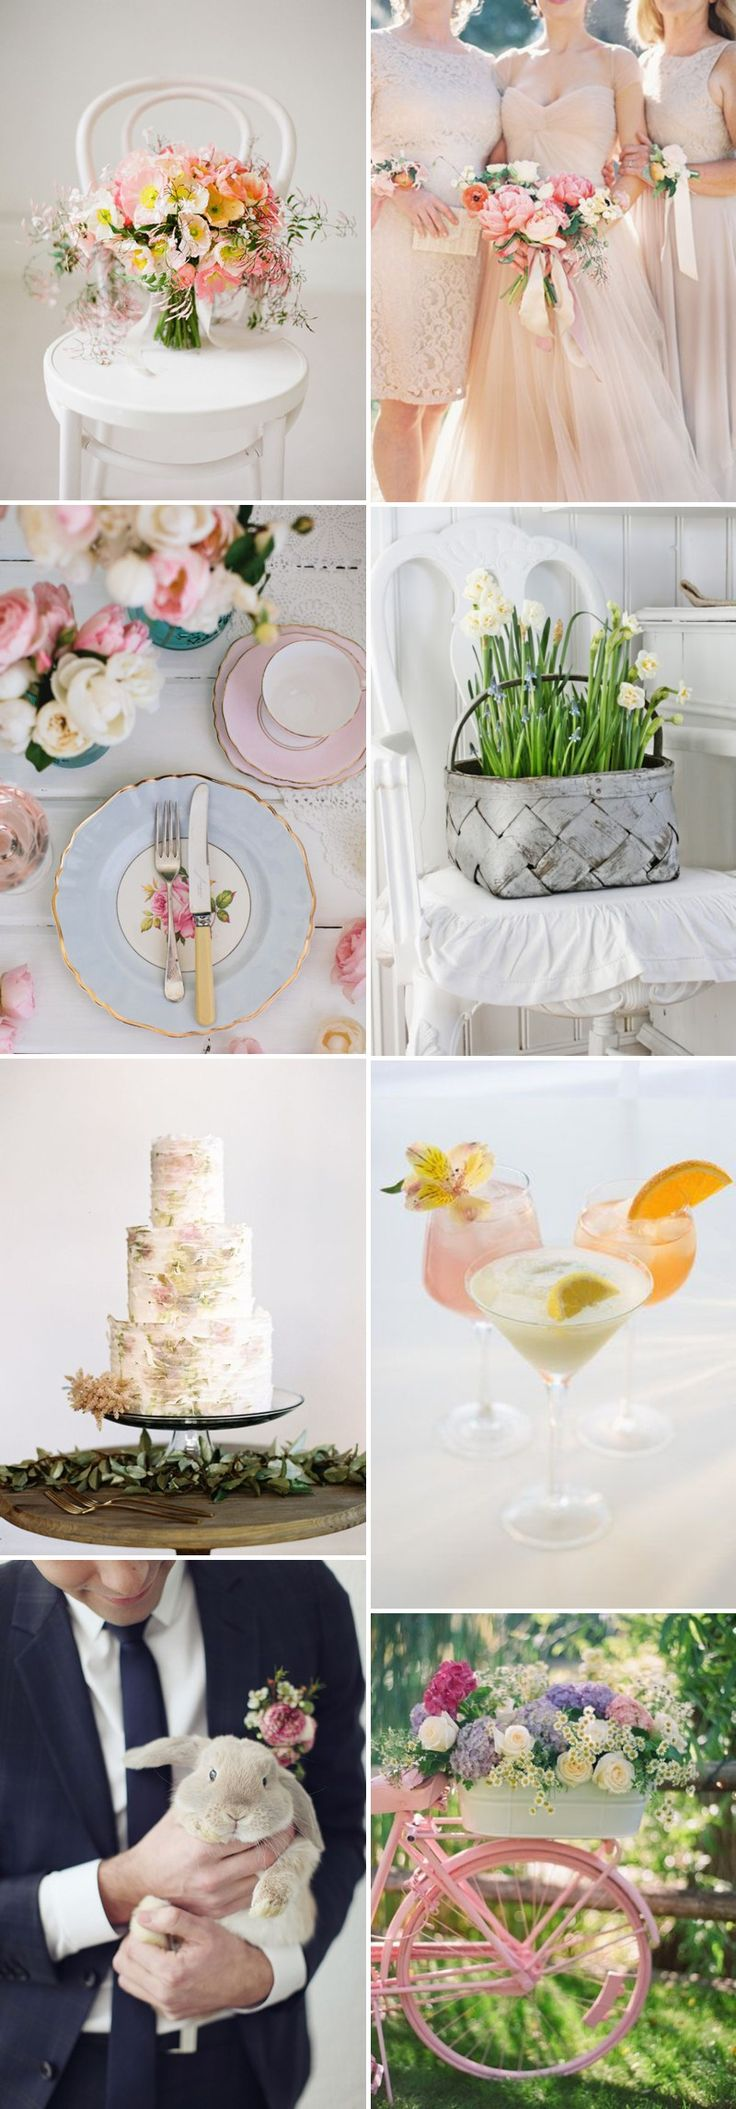 27 best Easter Wedding images on Pinterest | Easter, Easter bunny ...